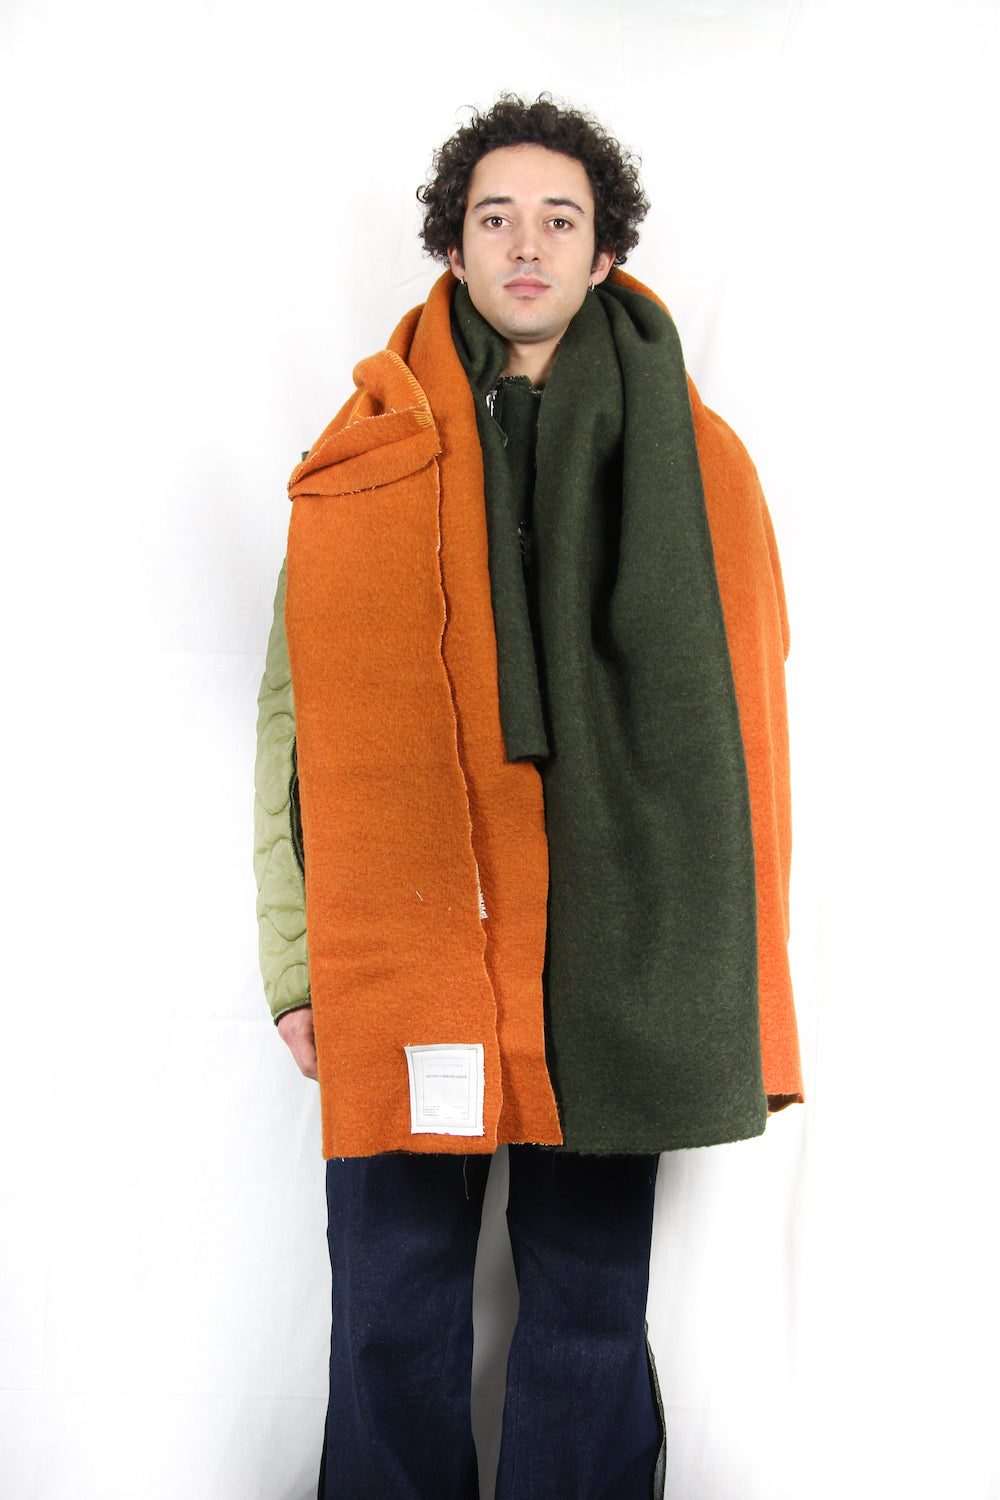 ARMY OVERSIZE BLANKET SCARF